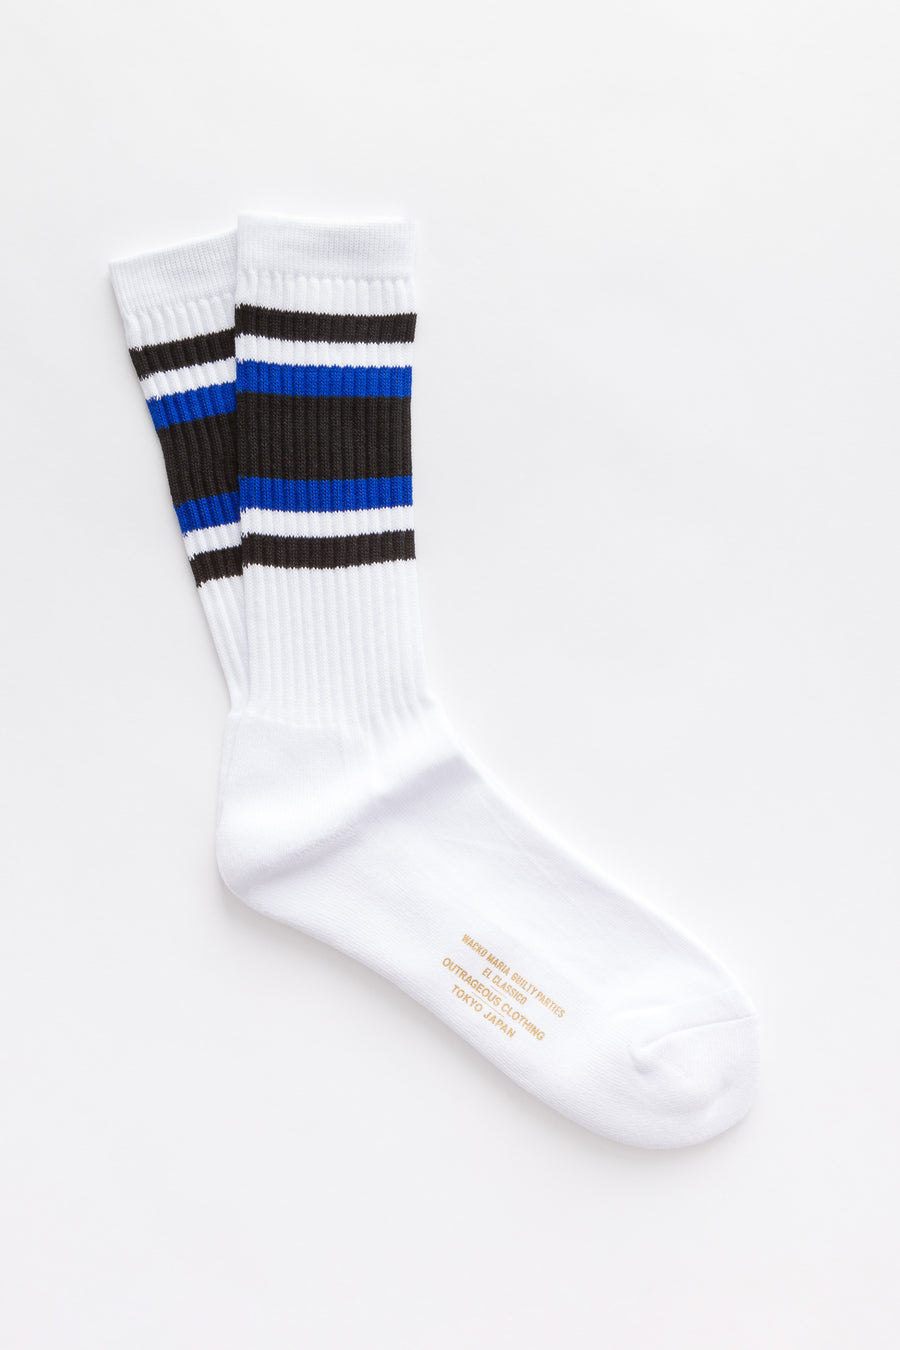 Wacko Maria Skater Socks (Type-1) in White-Blue - Notre